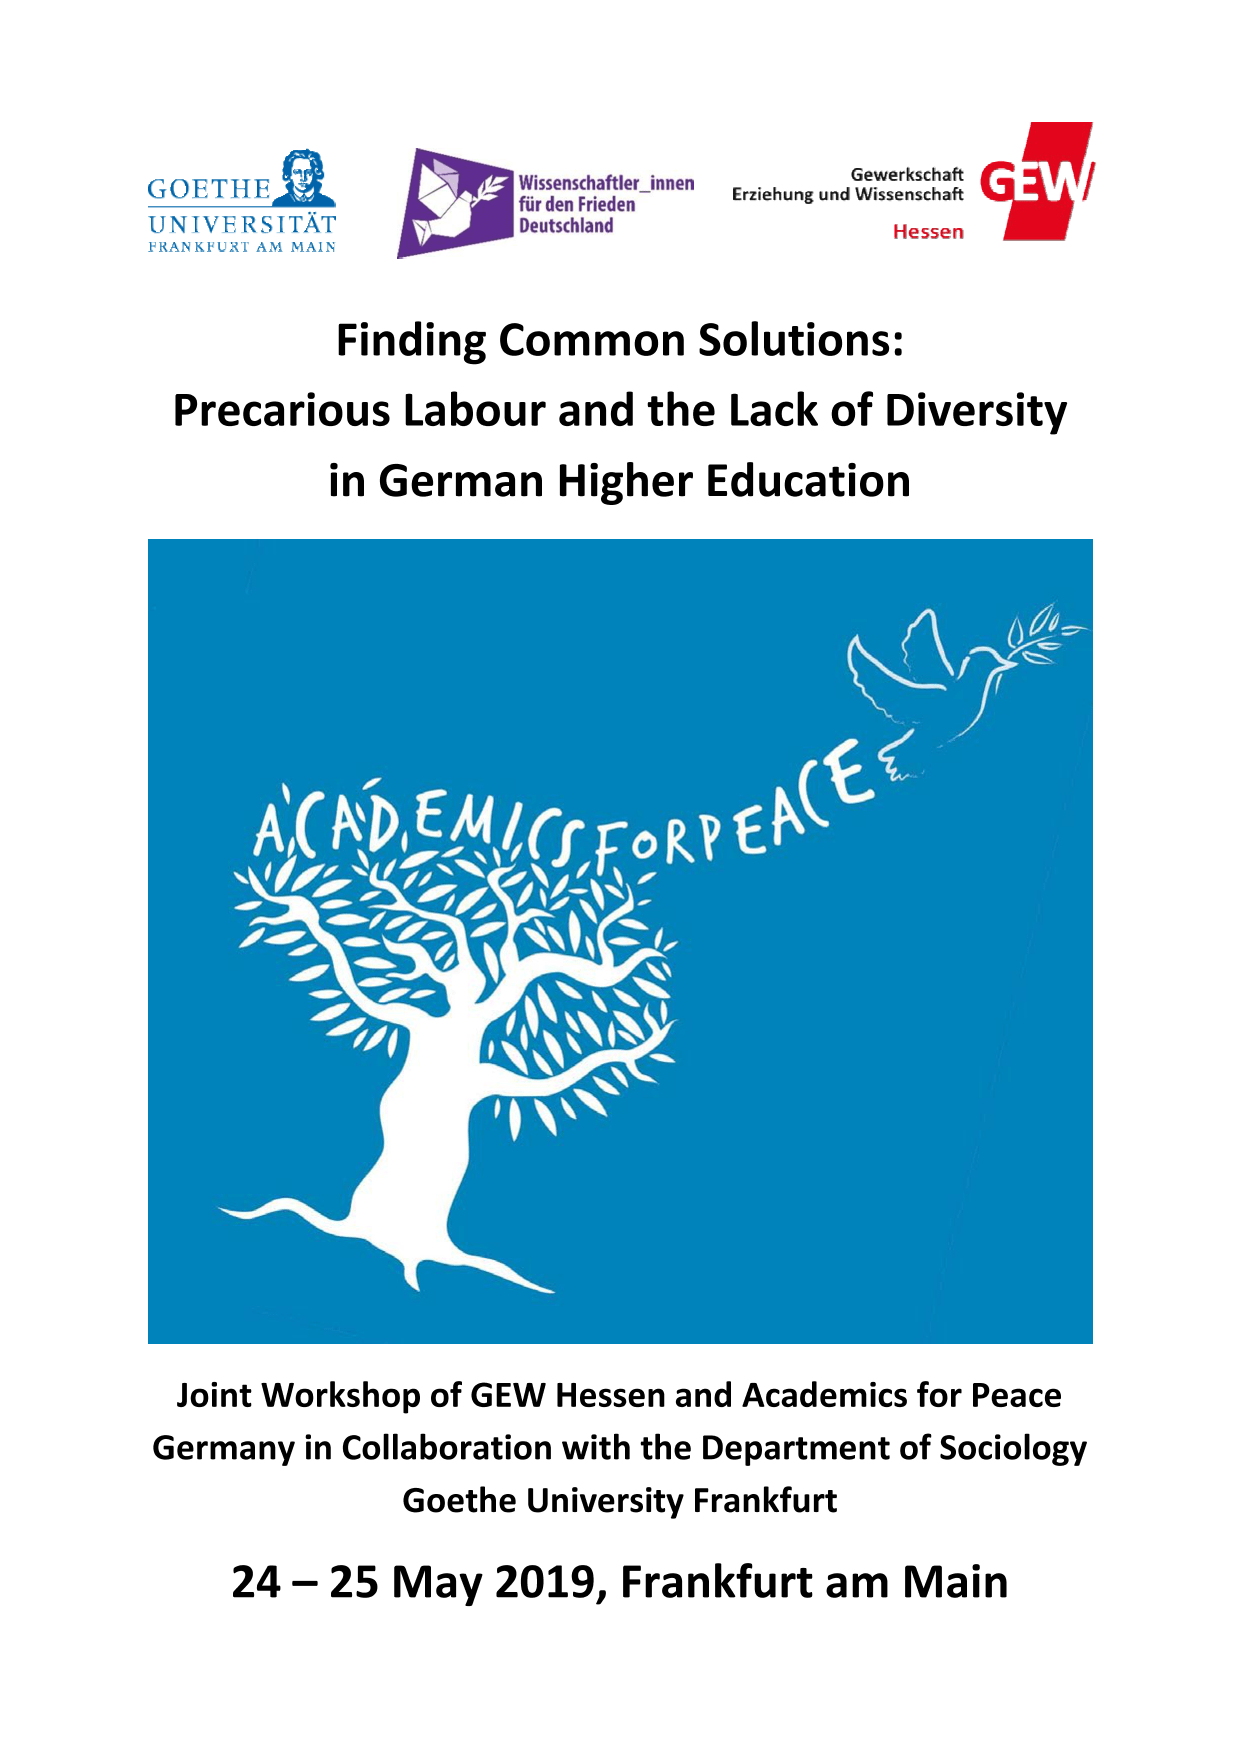 Finding Common Solutions: Precarious Labour and the Lack of Diversity in German Higher Education